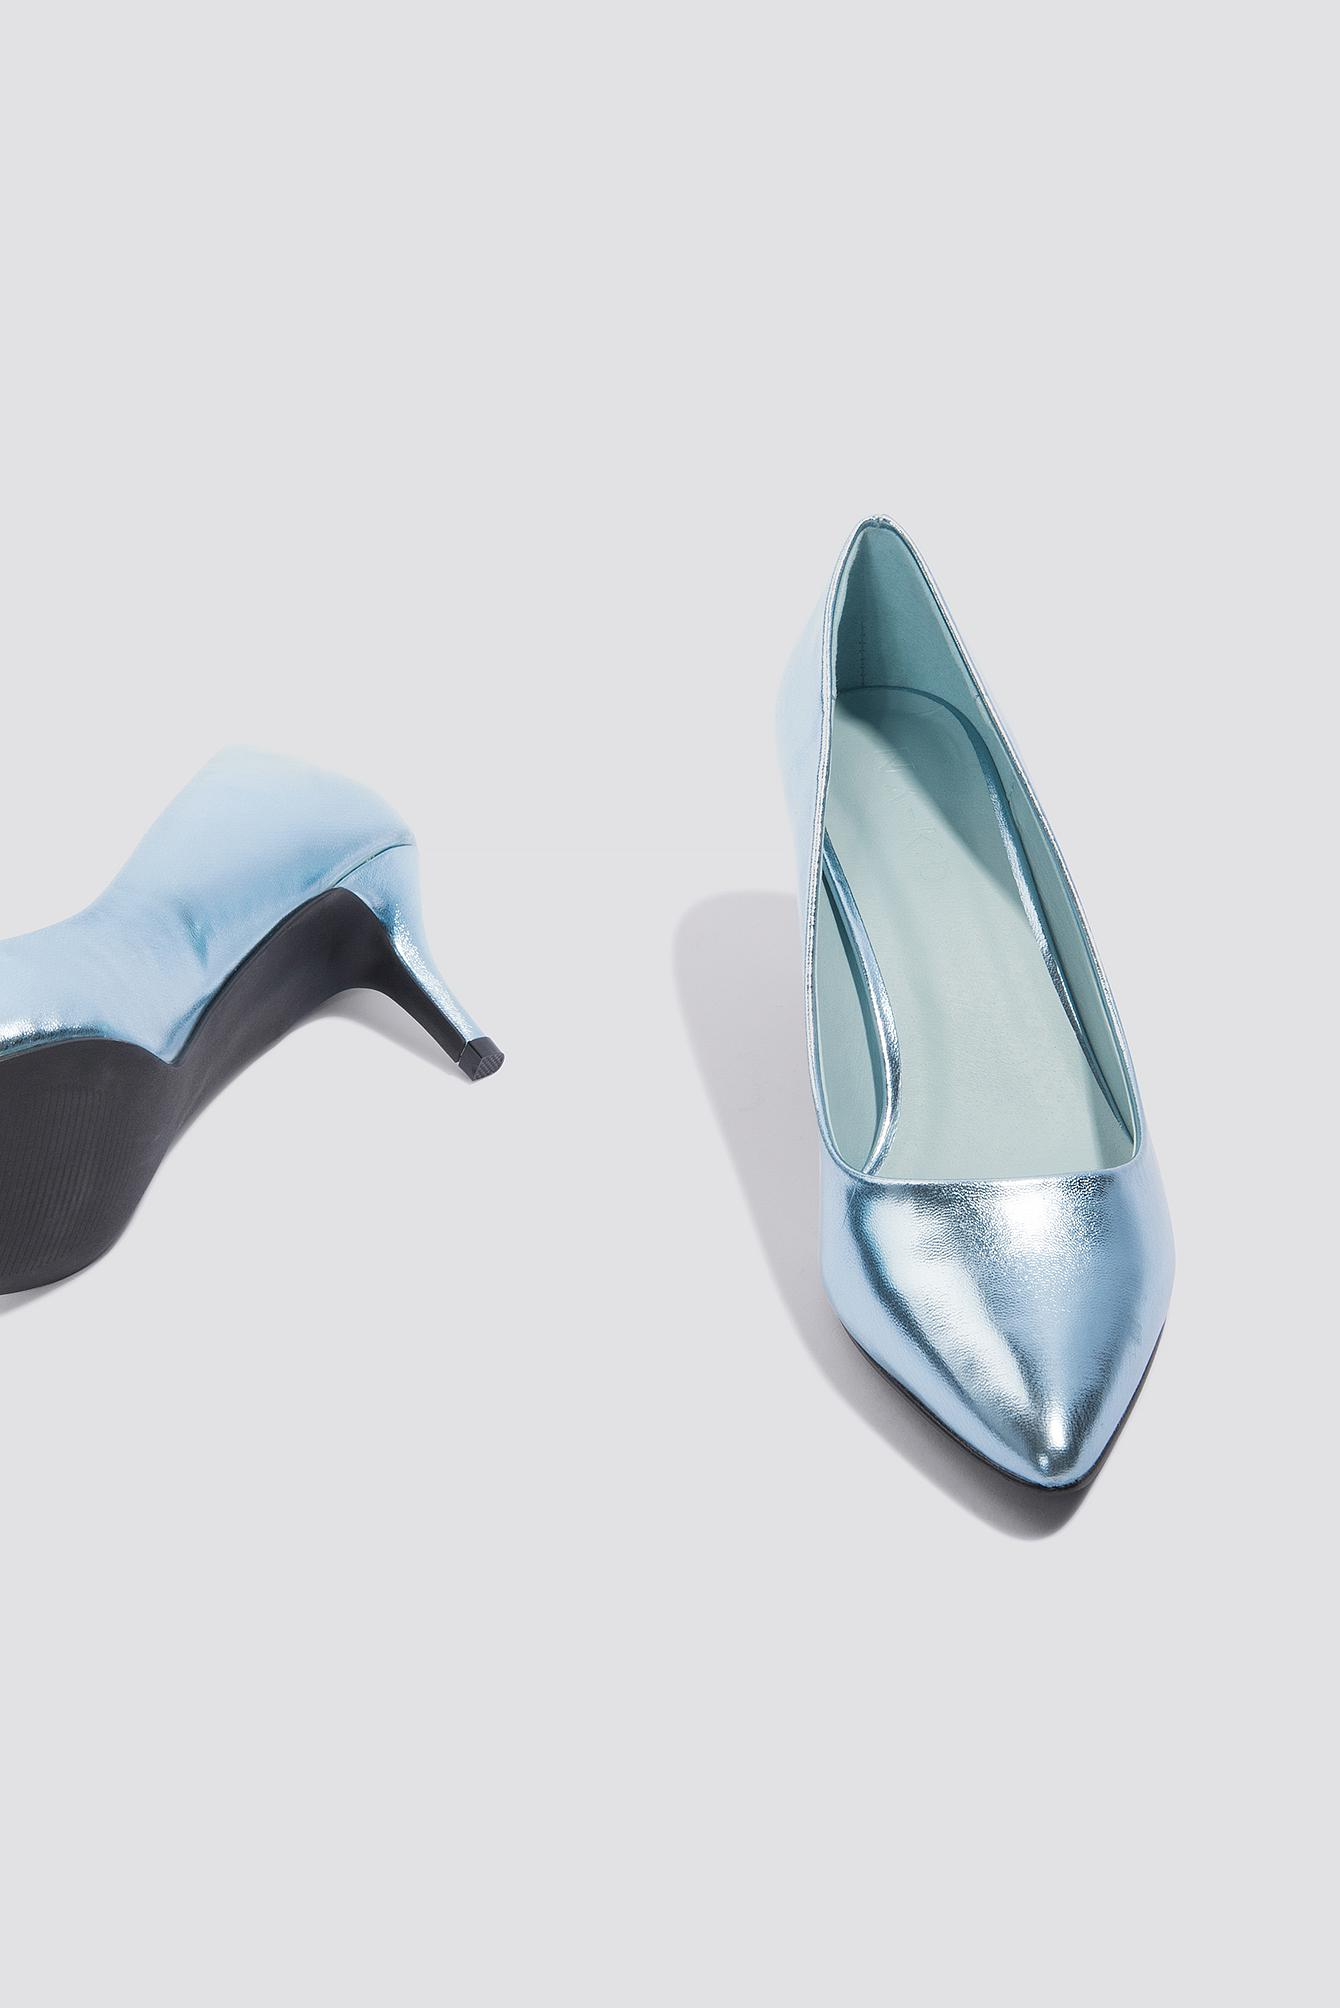 237d869838e Lyst - NA-KD Metallic Mid Heel Pumps Ice Blue in Blue